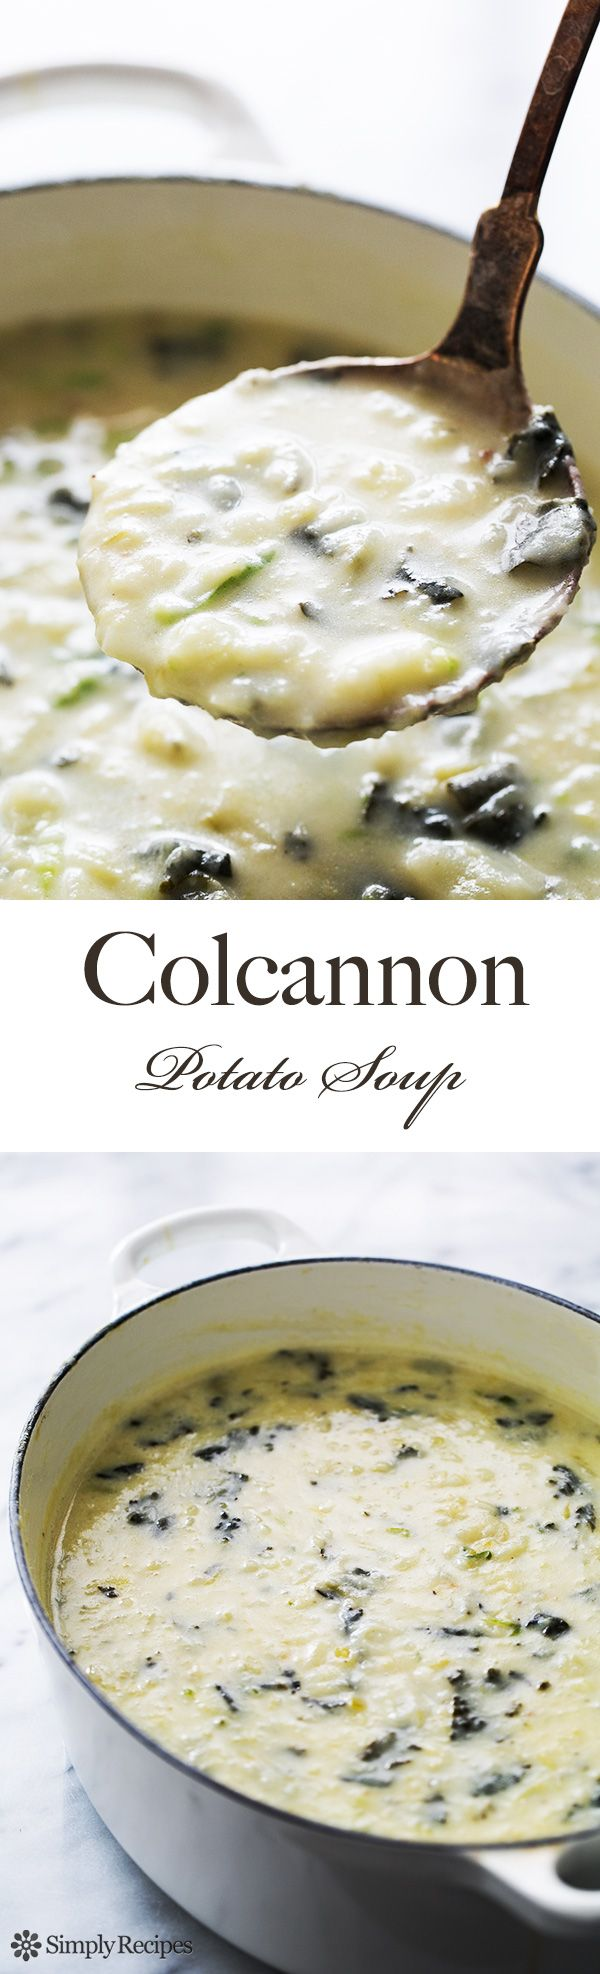 Hearty Colcannon Potato Soup! Like Irish colcannon, but in soup form. With russet potatoes, cabbage, kale, stock, and cream.  SimplyRecipes.com